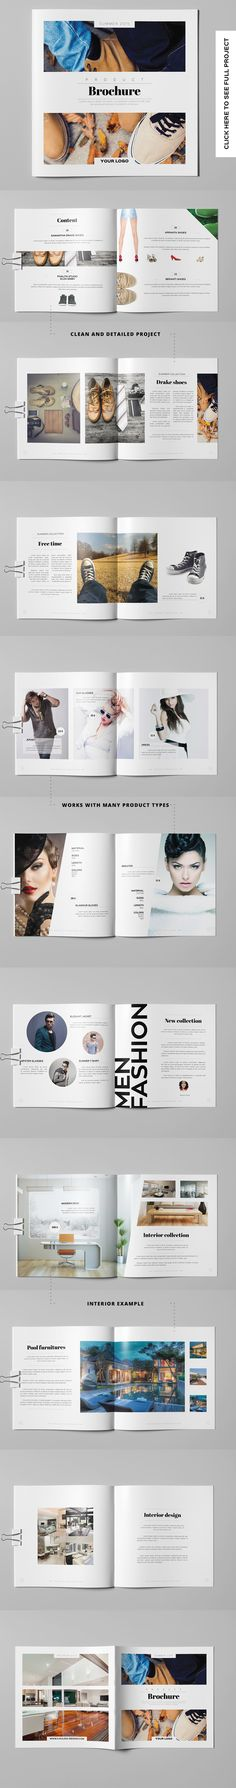 Product Brochure / Catalog